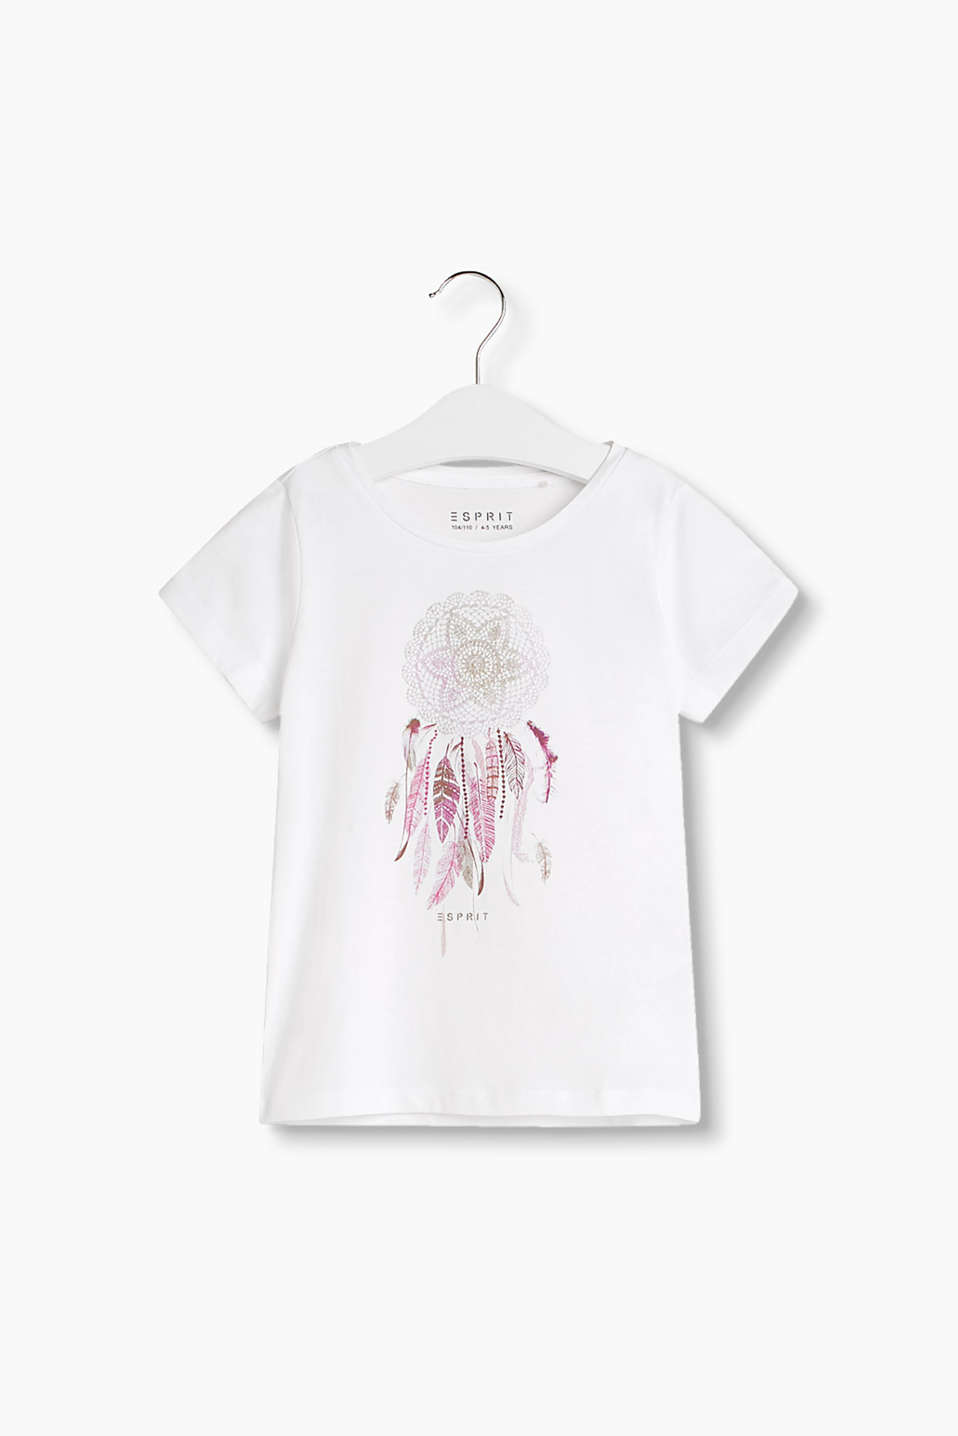 Crew neck T-shirt in soft cotton jersey with a dreamcatcher print